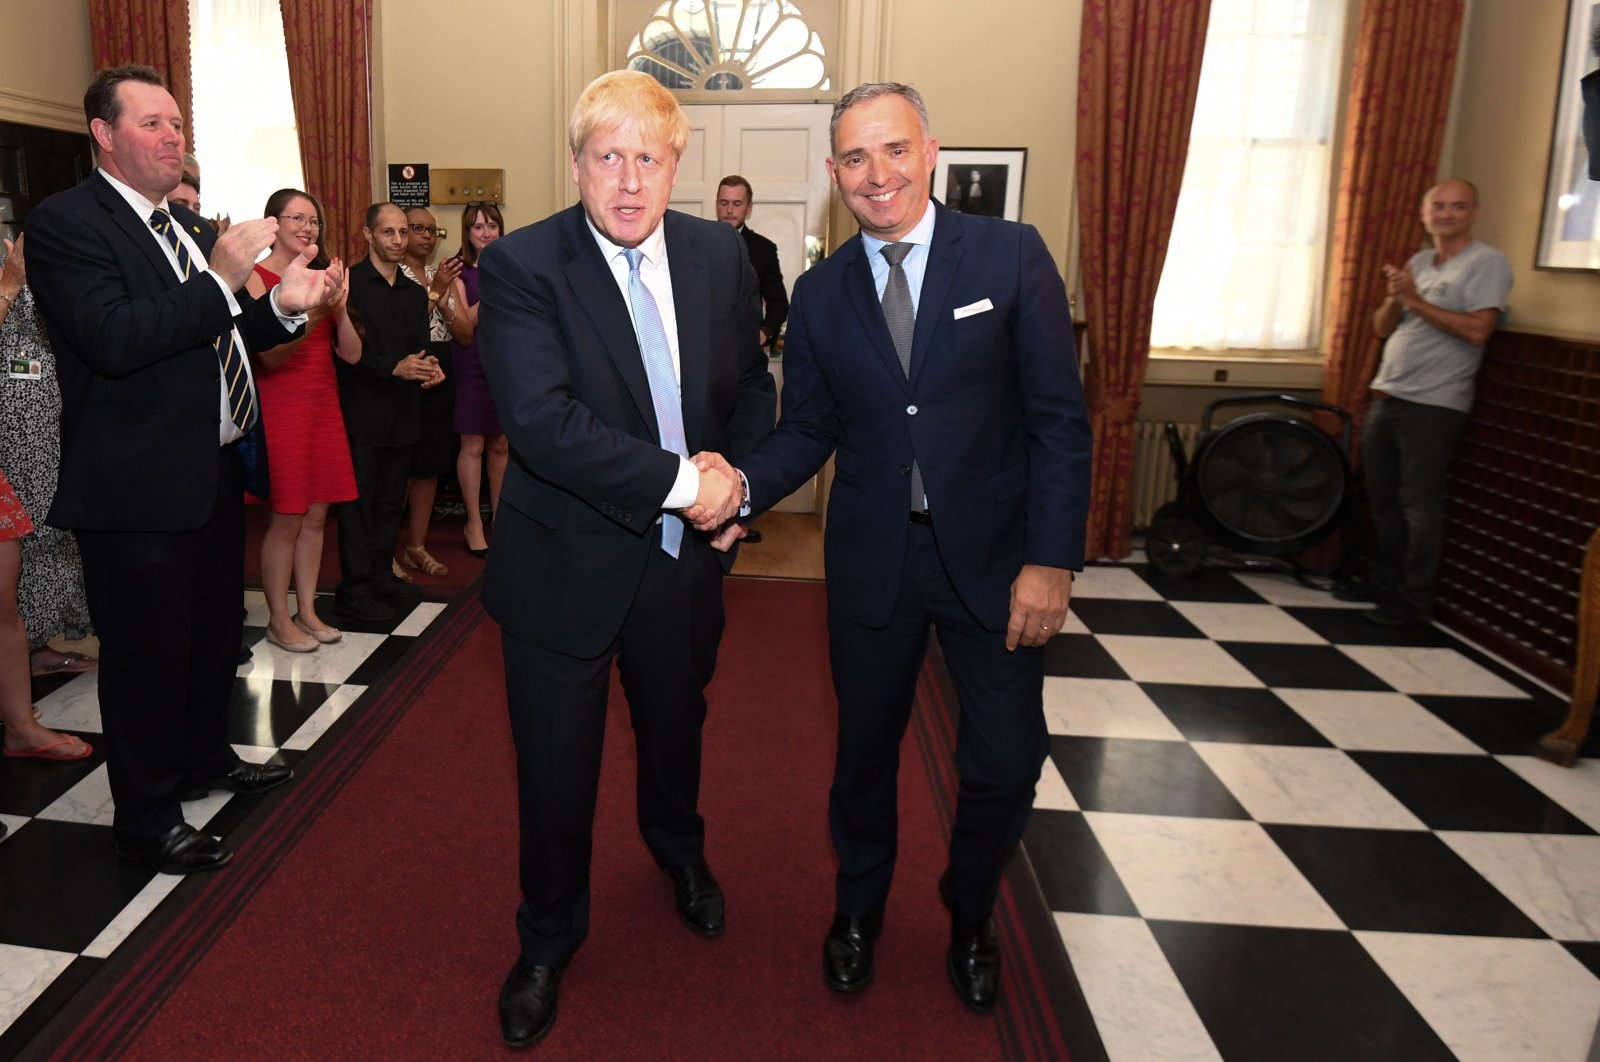 Britain's Prime Minister Boris Johnson (L) shakes hands with Cabinet Secretary Mark Sedwill (R), head of the Civil Service, in 10 Downing Street, London, England, July 24, 2019. (AFP Photo)